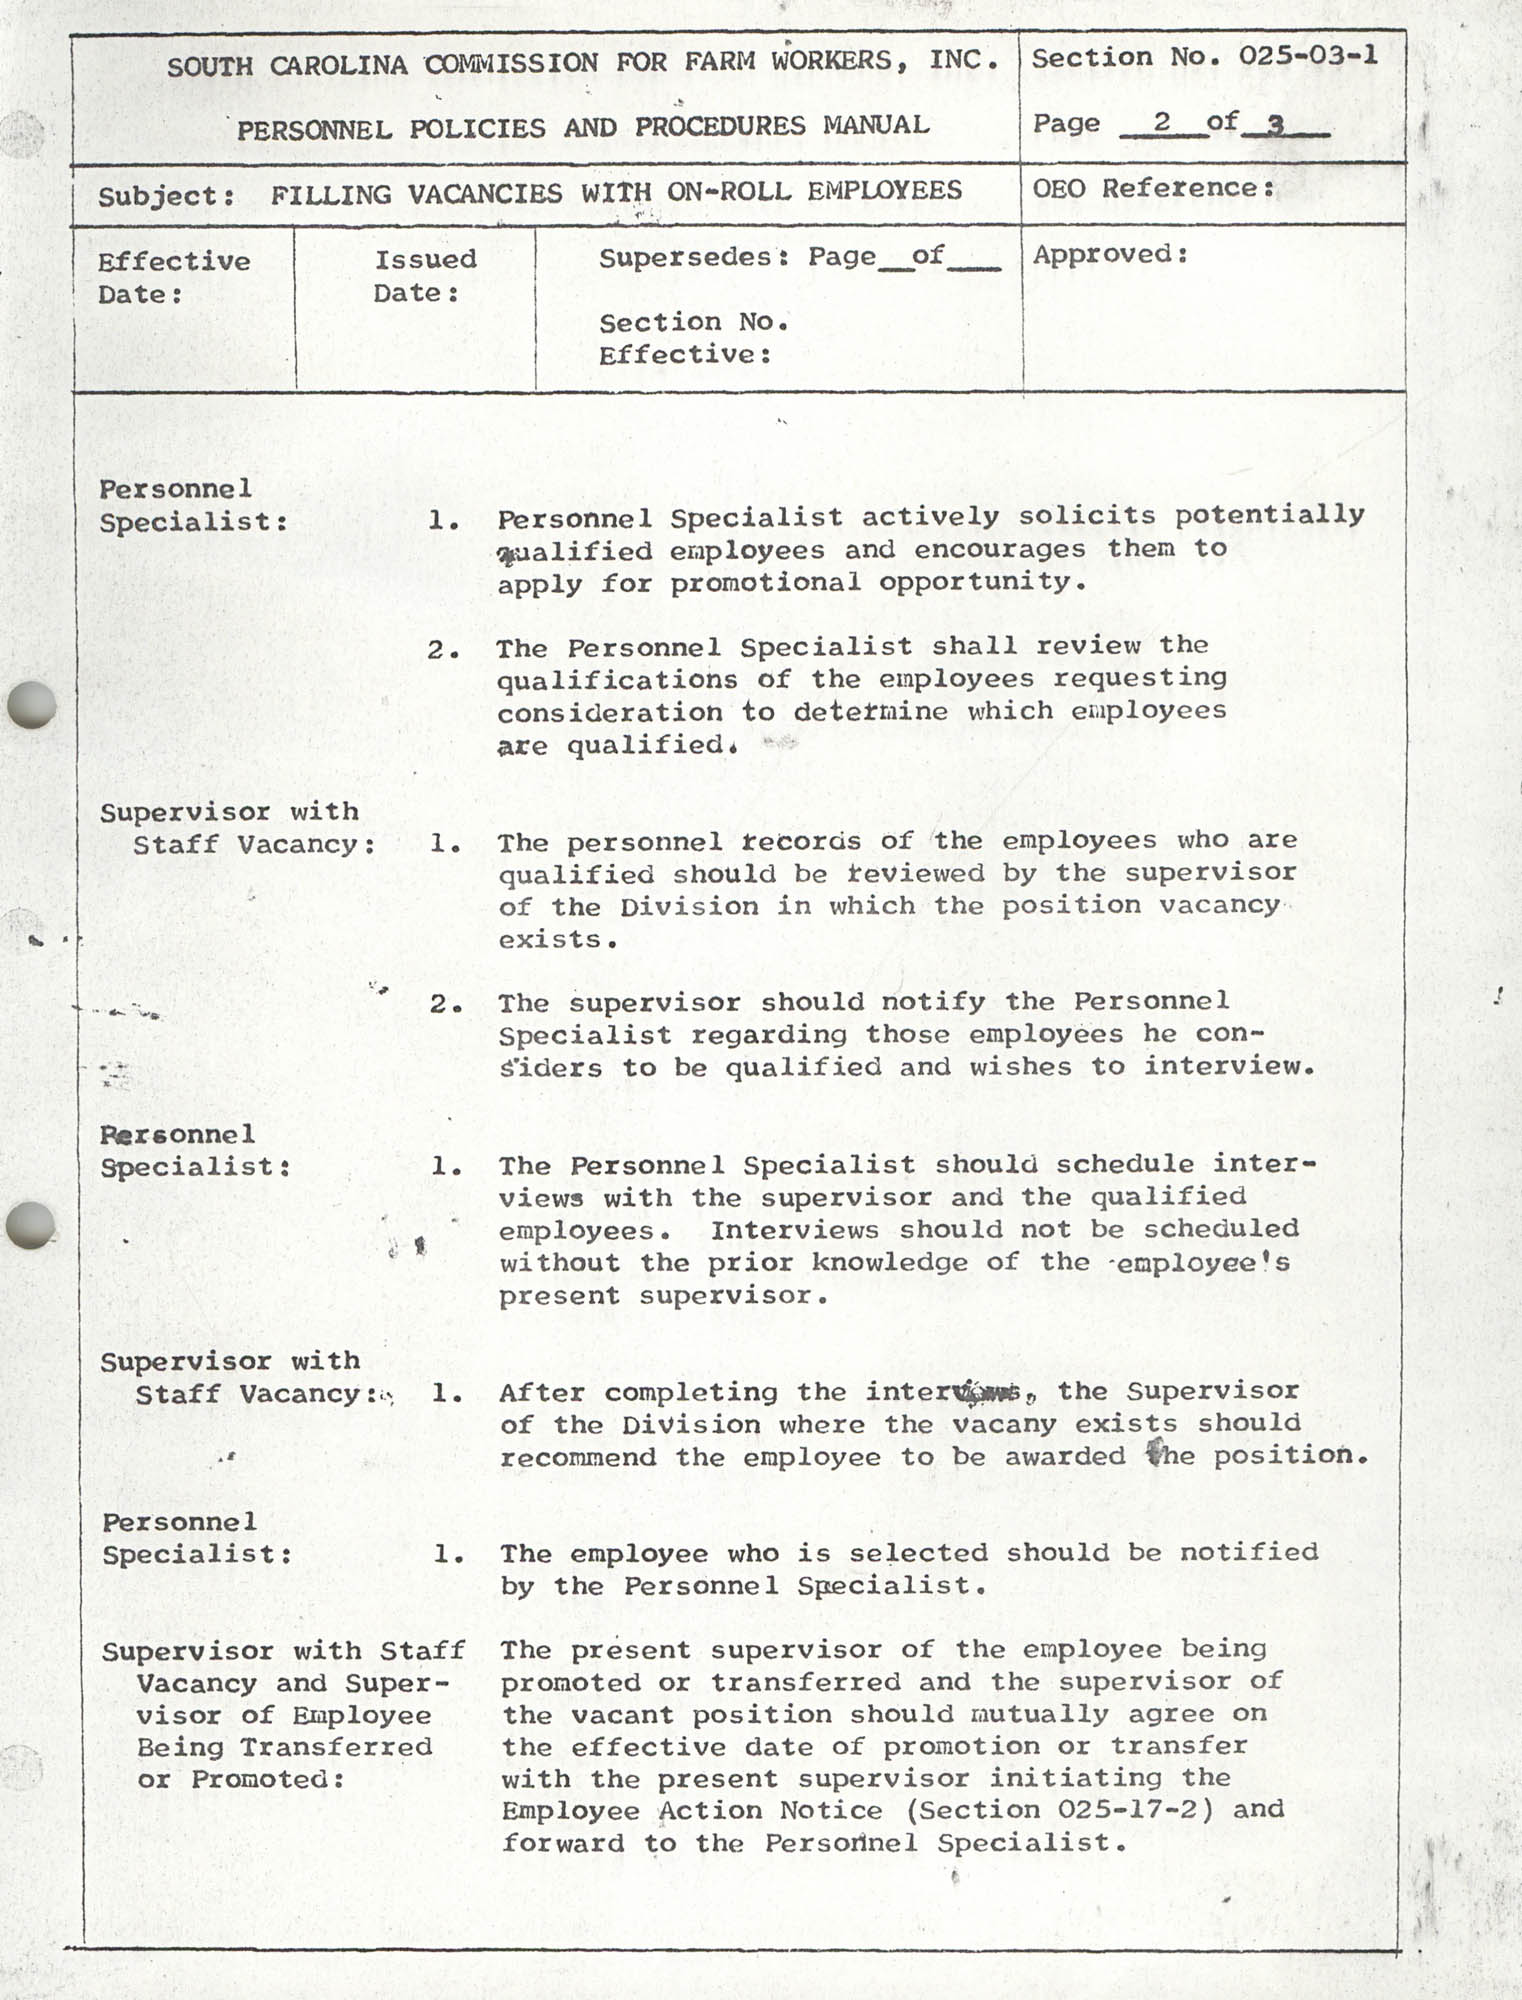 Personnel Policies and Procedures Manual, Section No. 025-03-1, Page 2